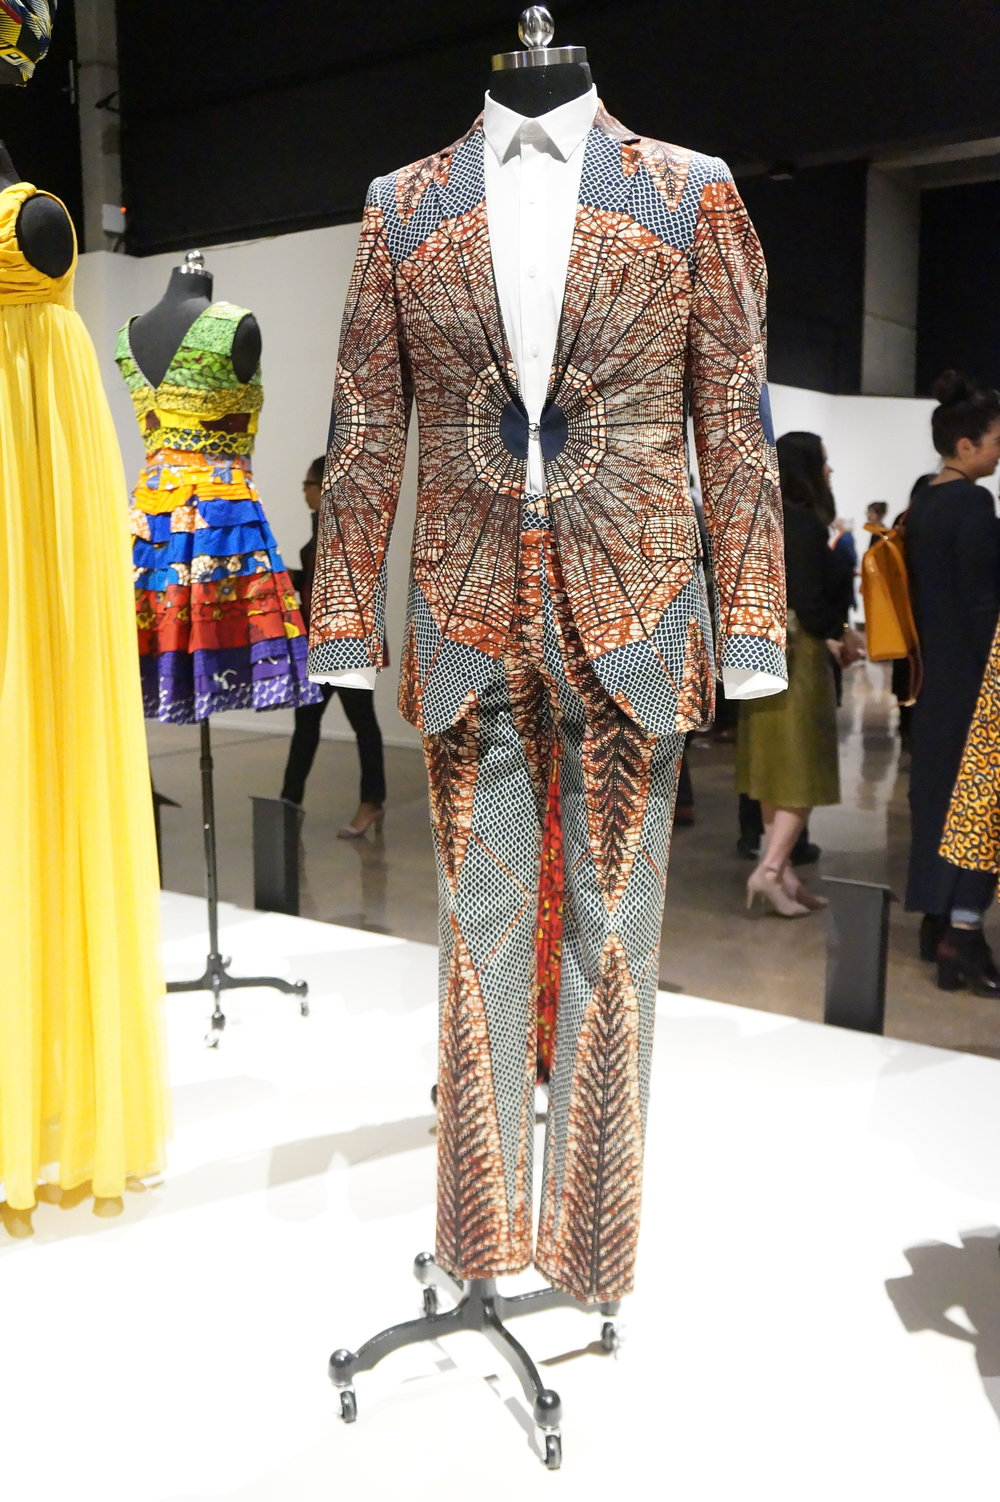 Andrea-Fenise-African-Print-Fashion-Now-Opening (31).JPG